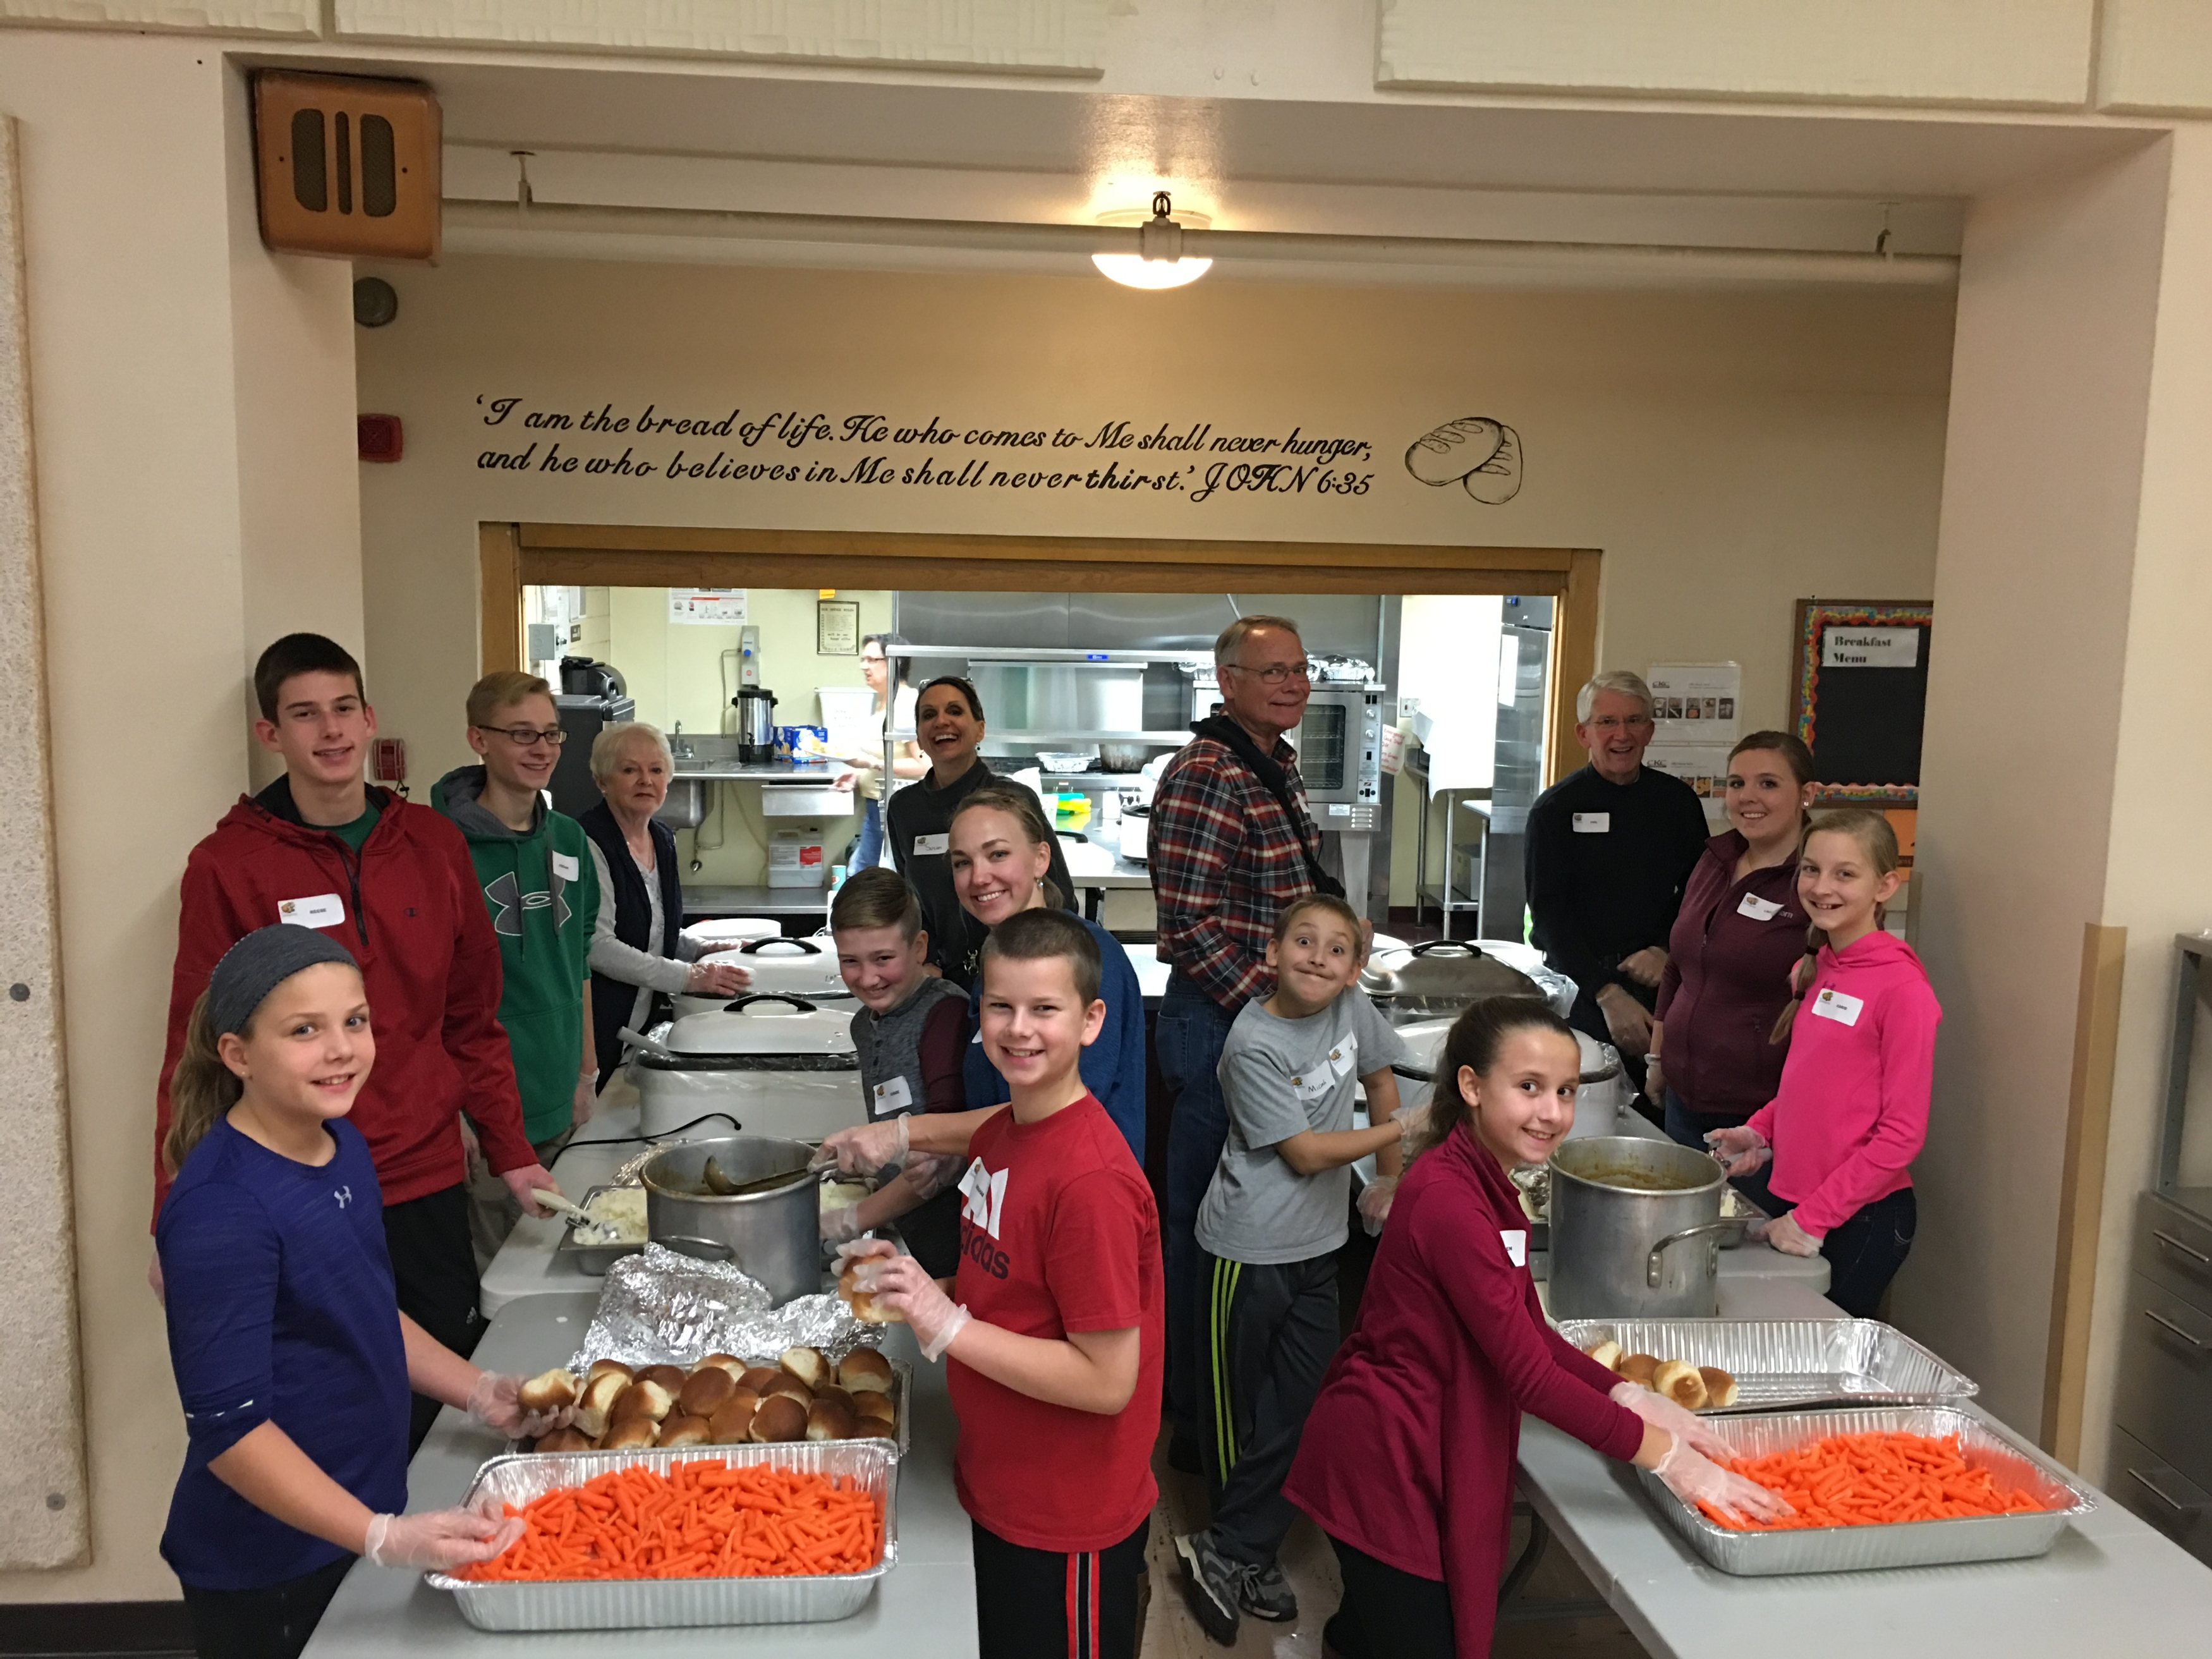 Cross View members prepare to serve the Thanksgiving meal at Trinity First School